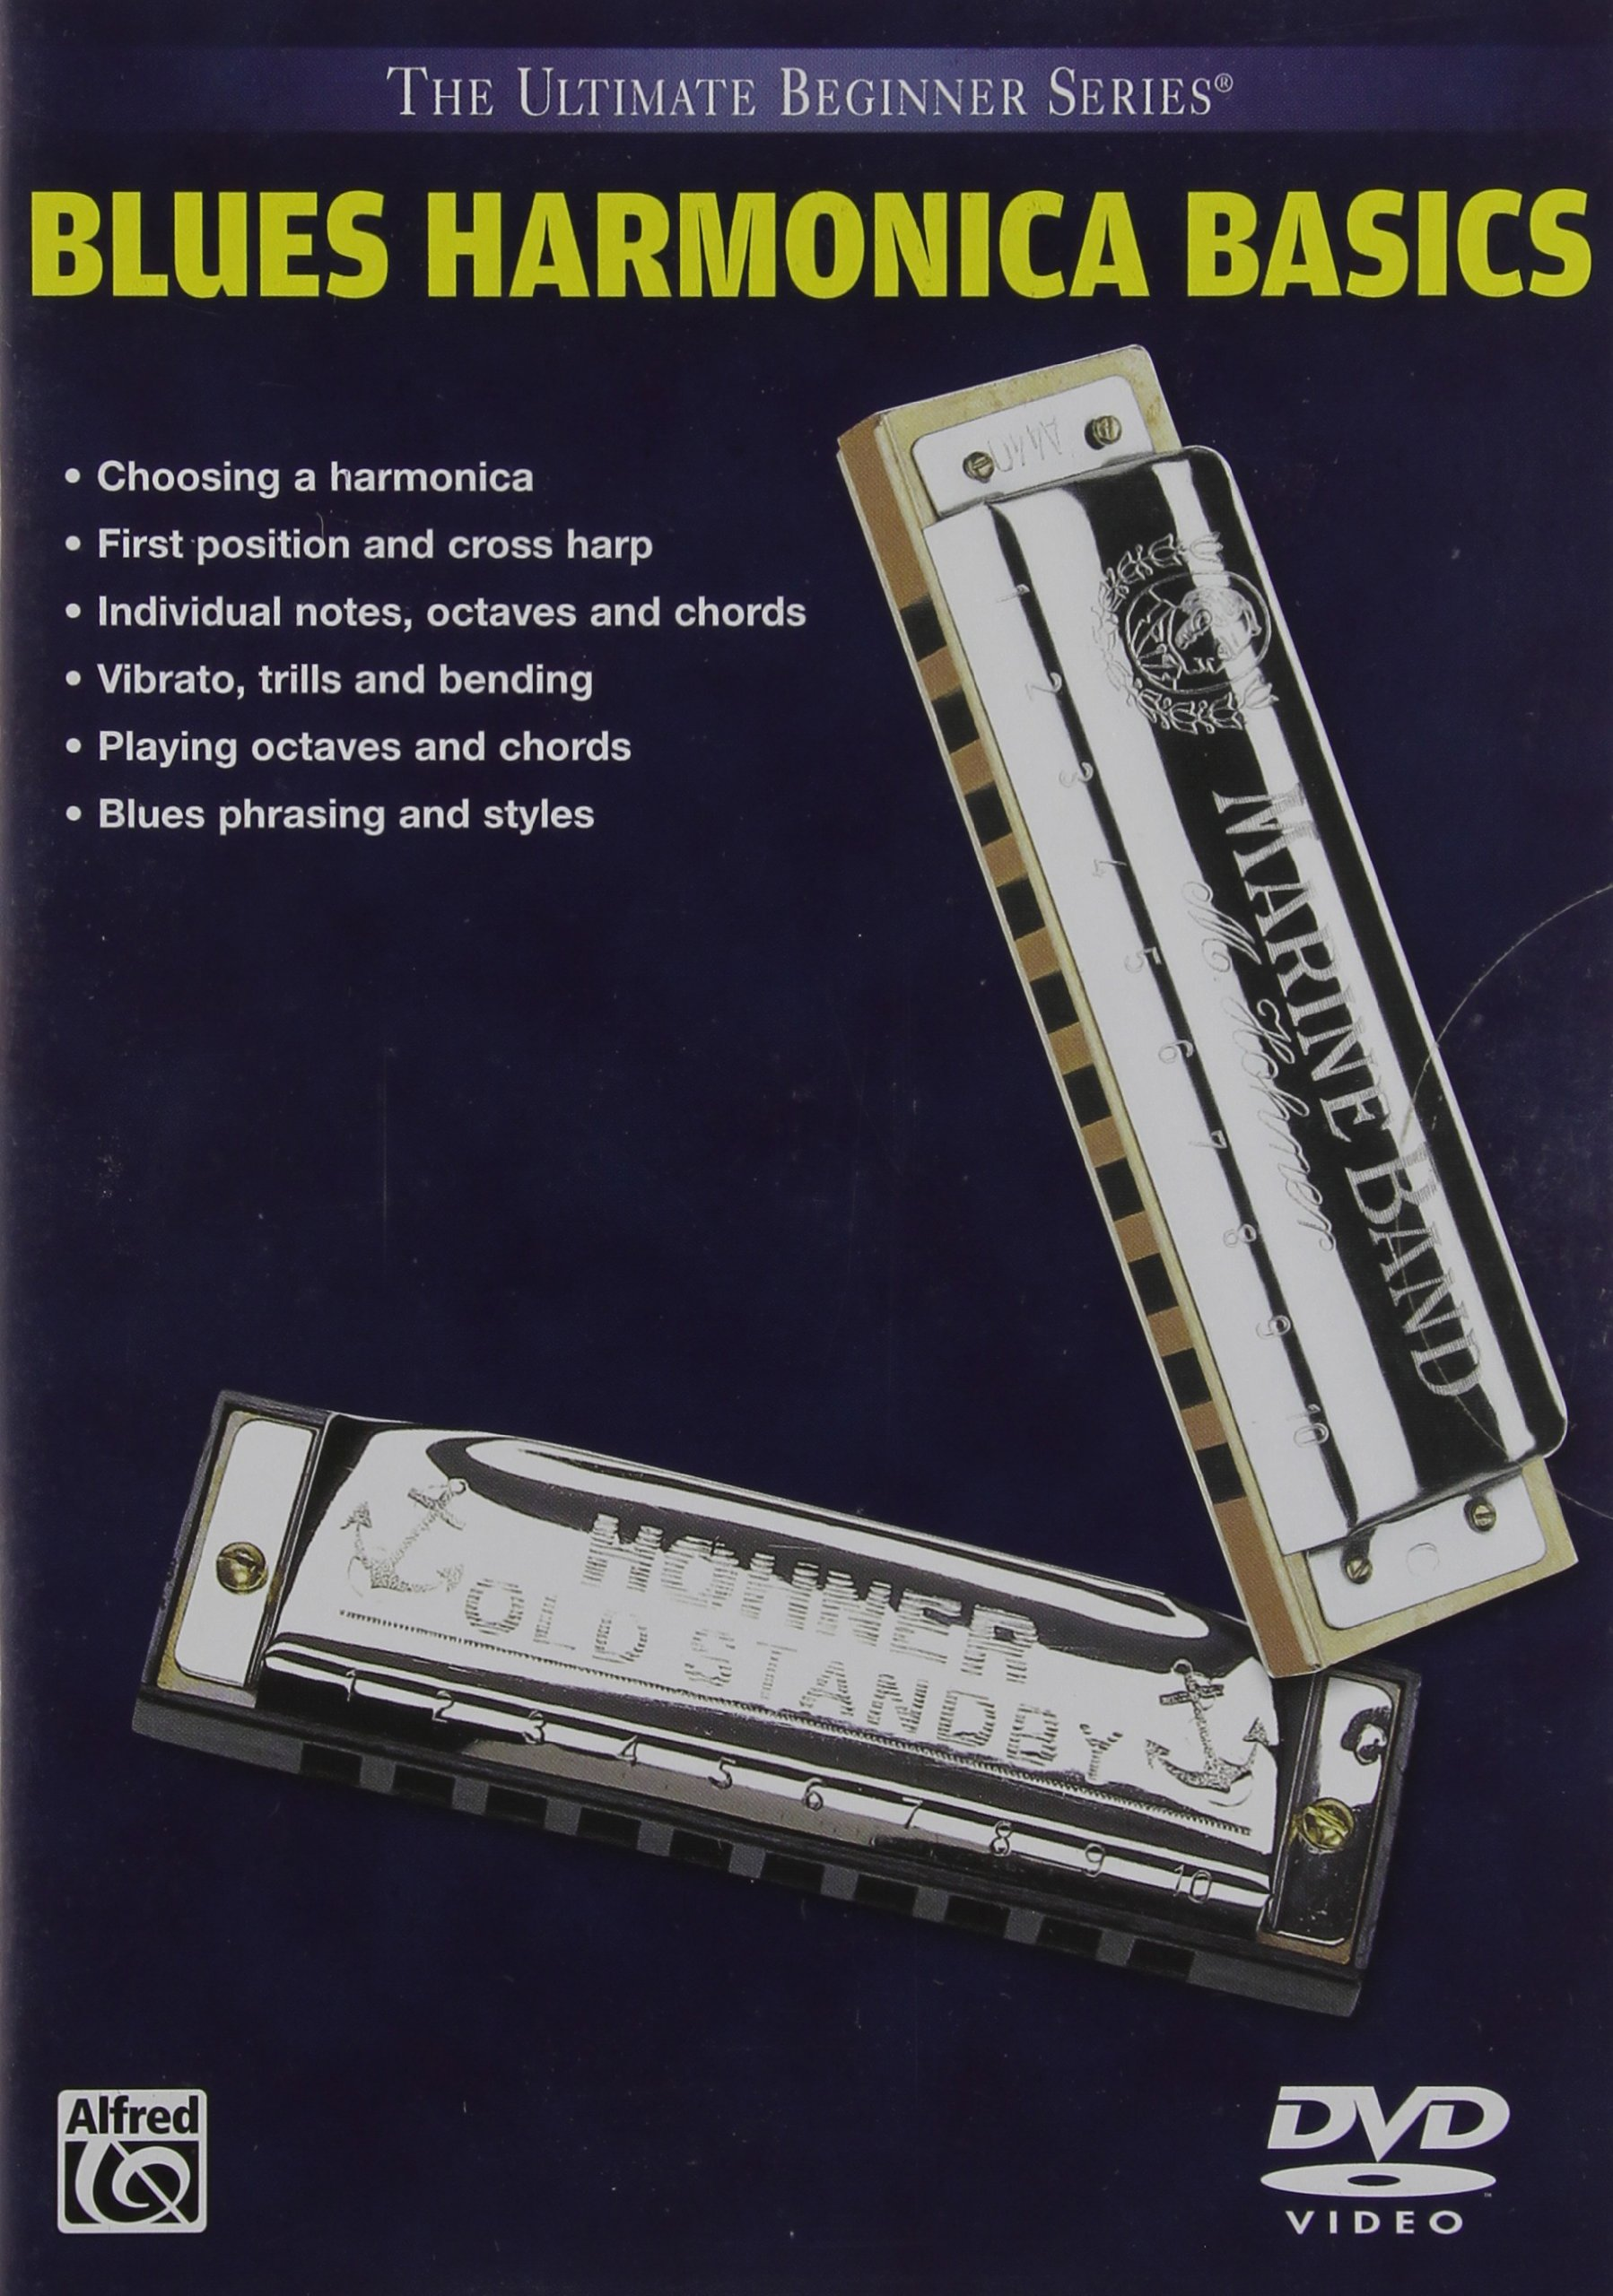 Ultimate Beginner Blues Harmonica Basics, Vol 1 & 2 (DVD) by Alfred